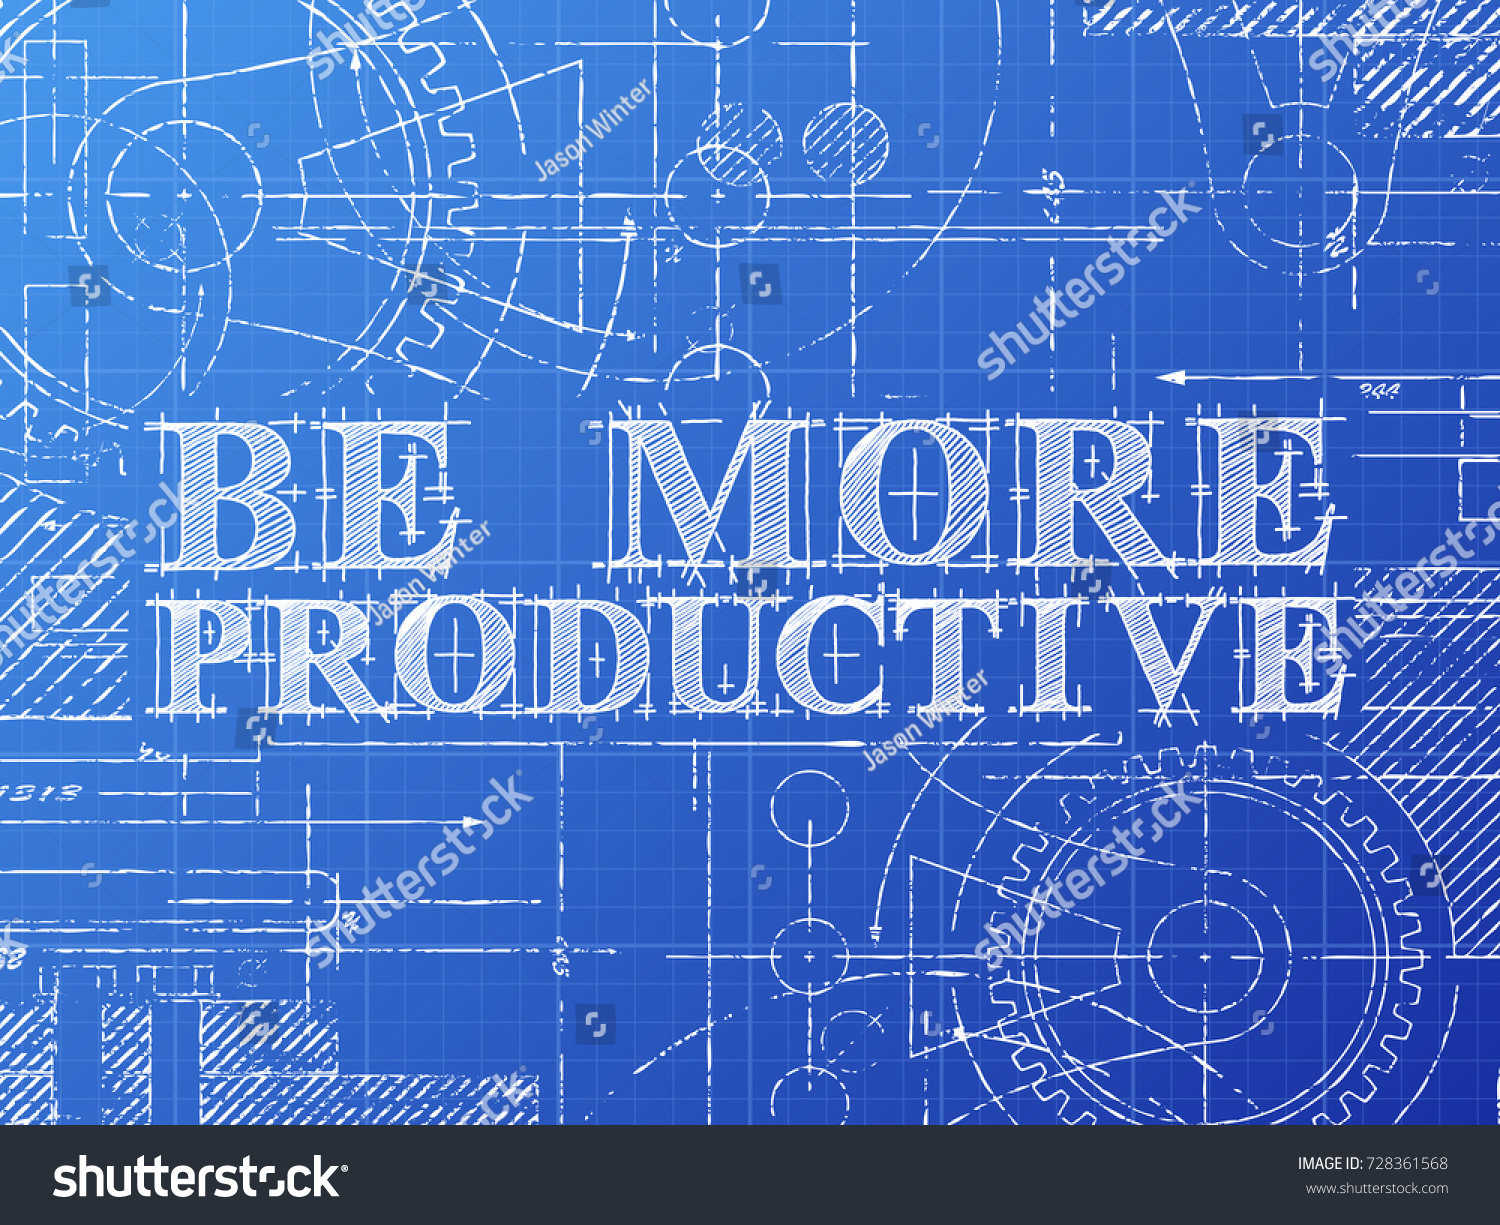 Be more productive text gear wheels stock vector 728361568 be more productive text with gear wheels hand drawn on blueprint technical drawing background malvernweather Image collections